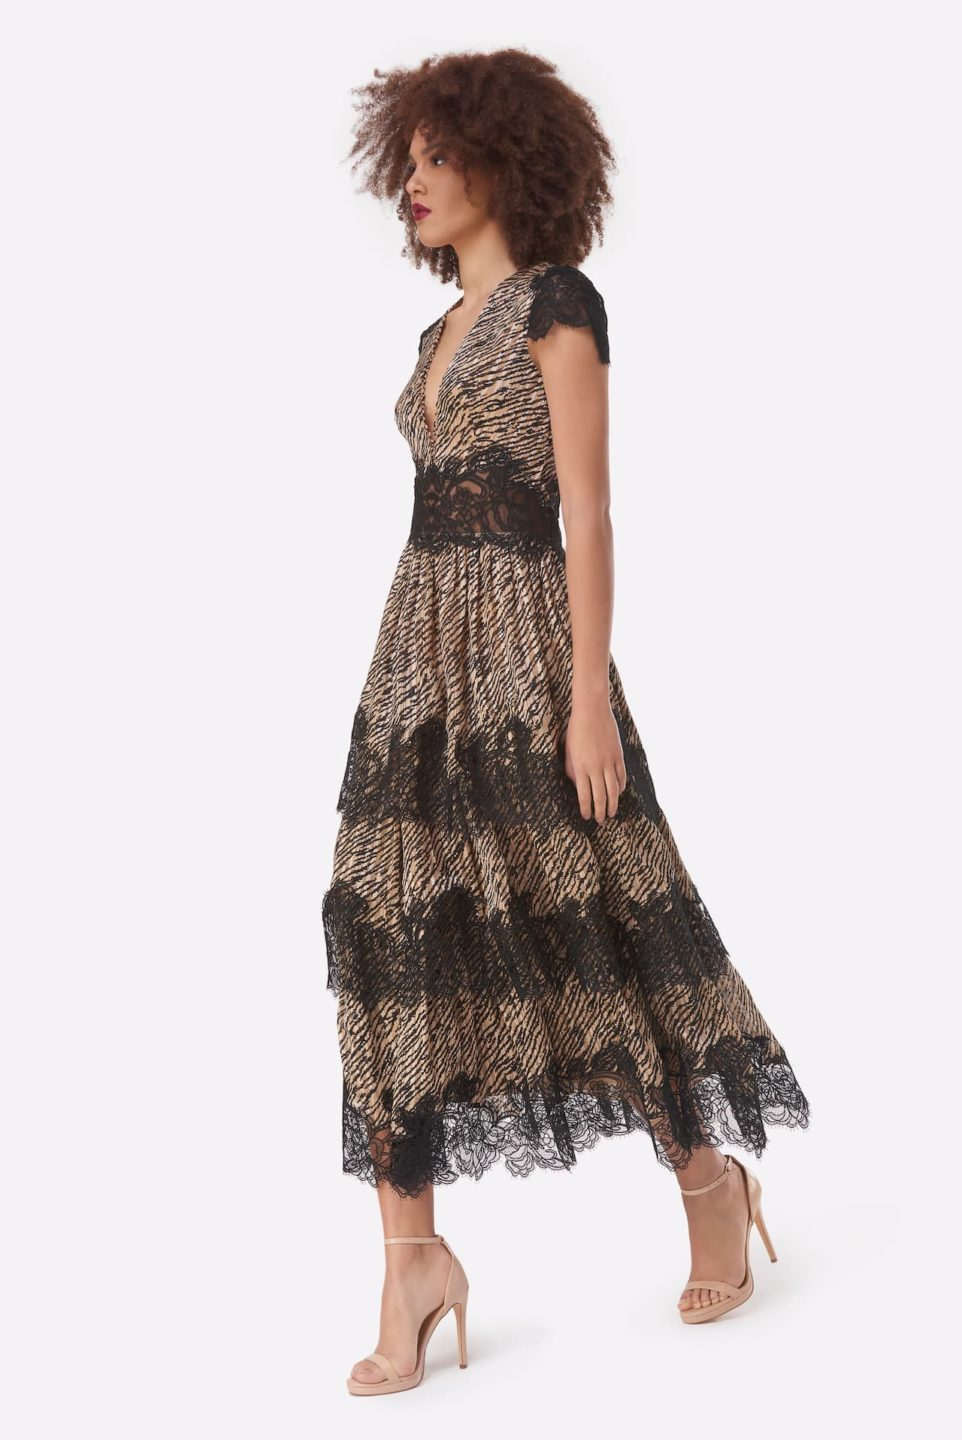 Daralisa PS2122 Beige and Black Tiger-Print Chiffon Tiered Dress with Gossamer Lace & Gold Threading